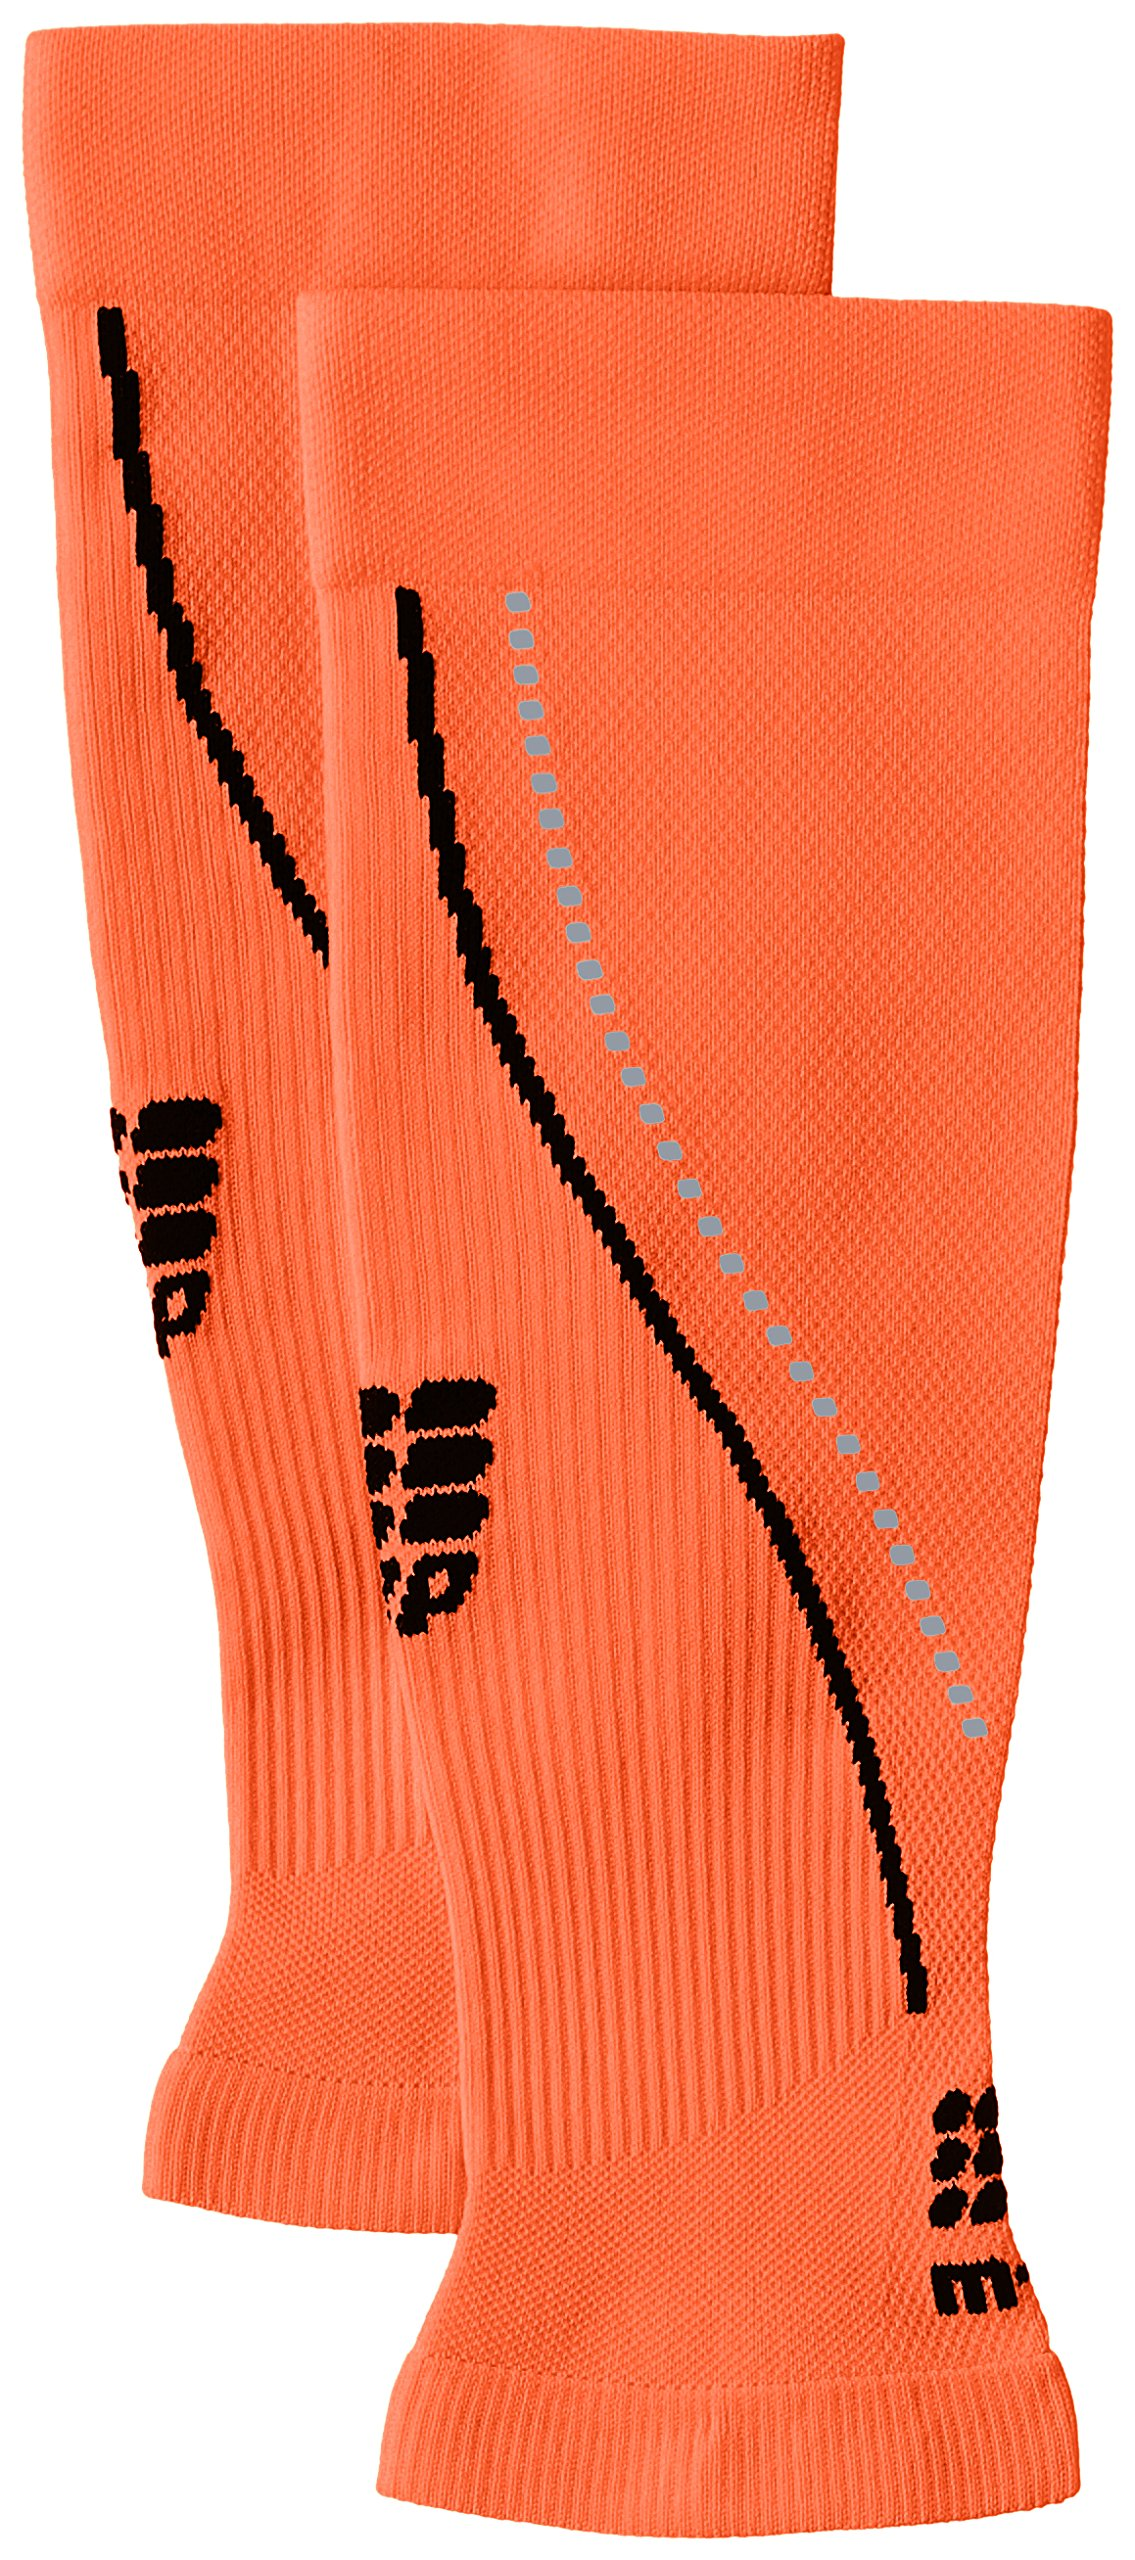 CEP Men's Progressive+ Night Calf Sleeves 2.0 Provide Unique Compression Technology for Running, Cross Training, Fitness, Calf Injuries, Shin Splits, Recovery and Athletics, 20-30mmHg , Flash Orange/Black , V